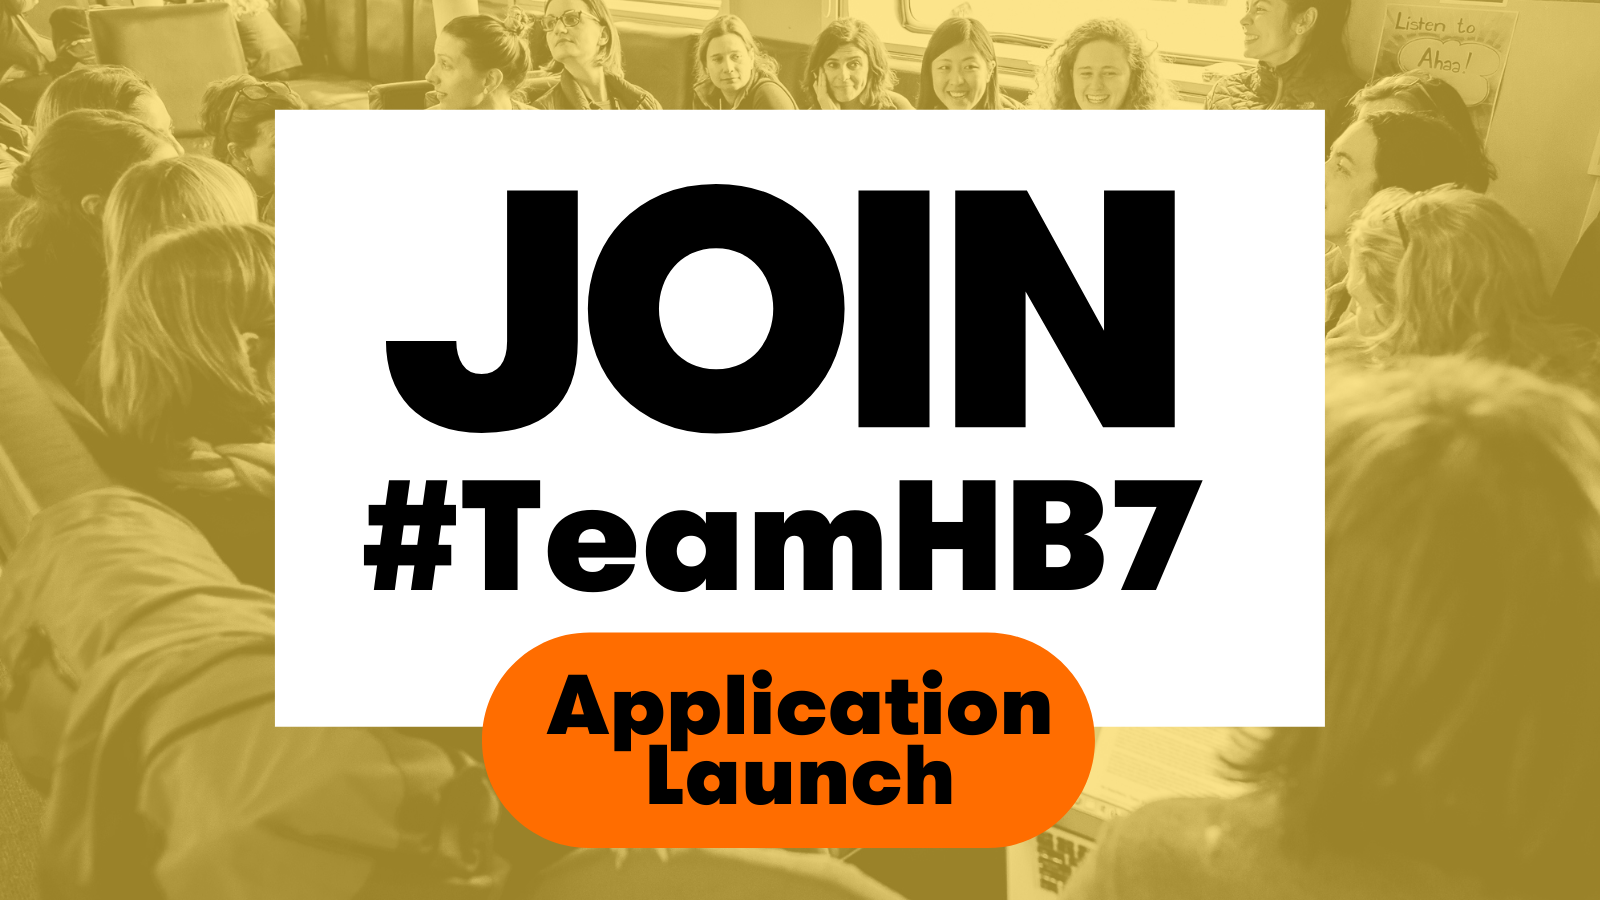 #TeamHB7 - Live Application Launch Event